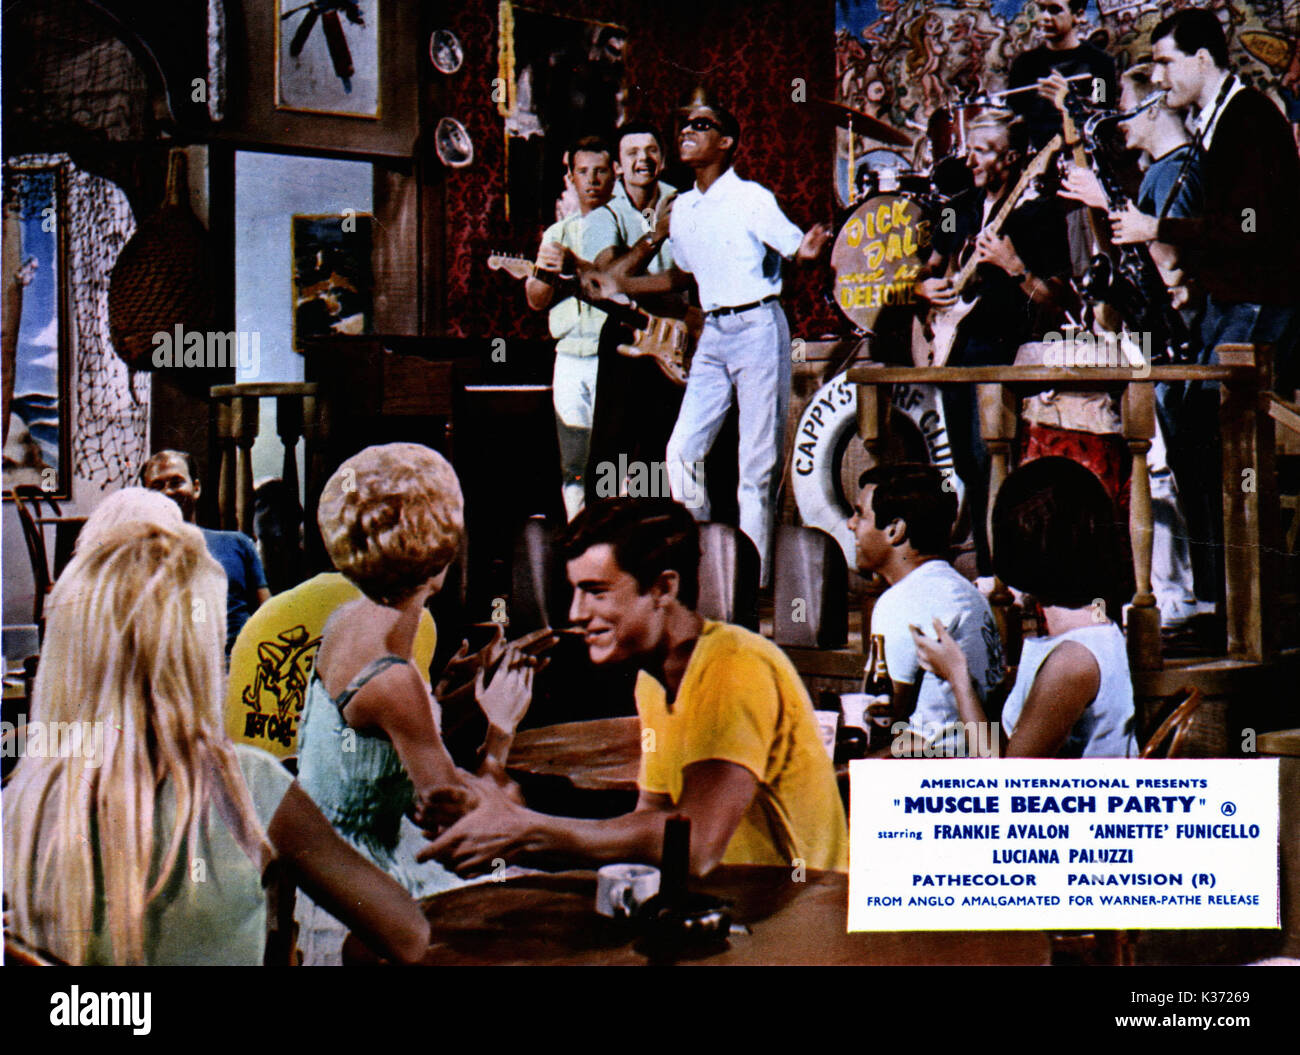 Muscle Beach Party 1964